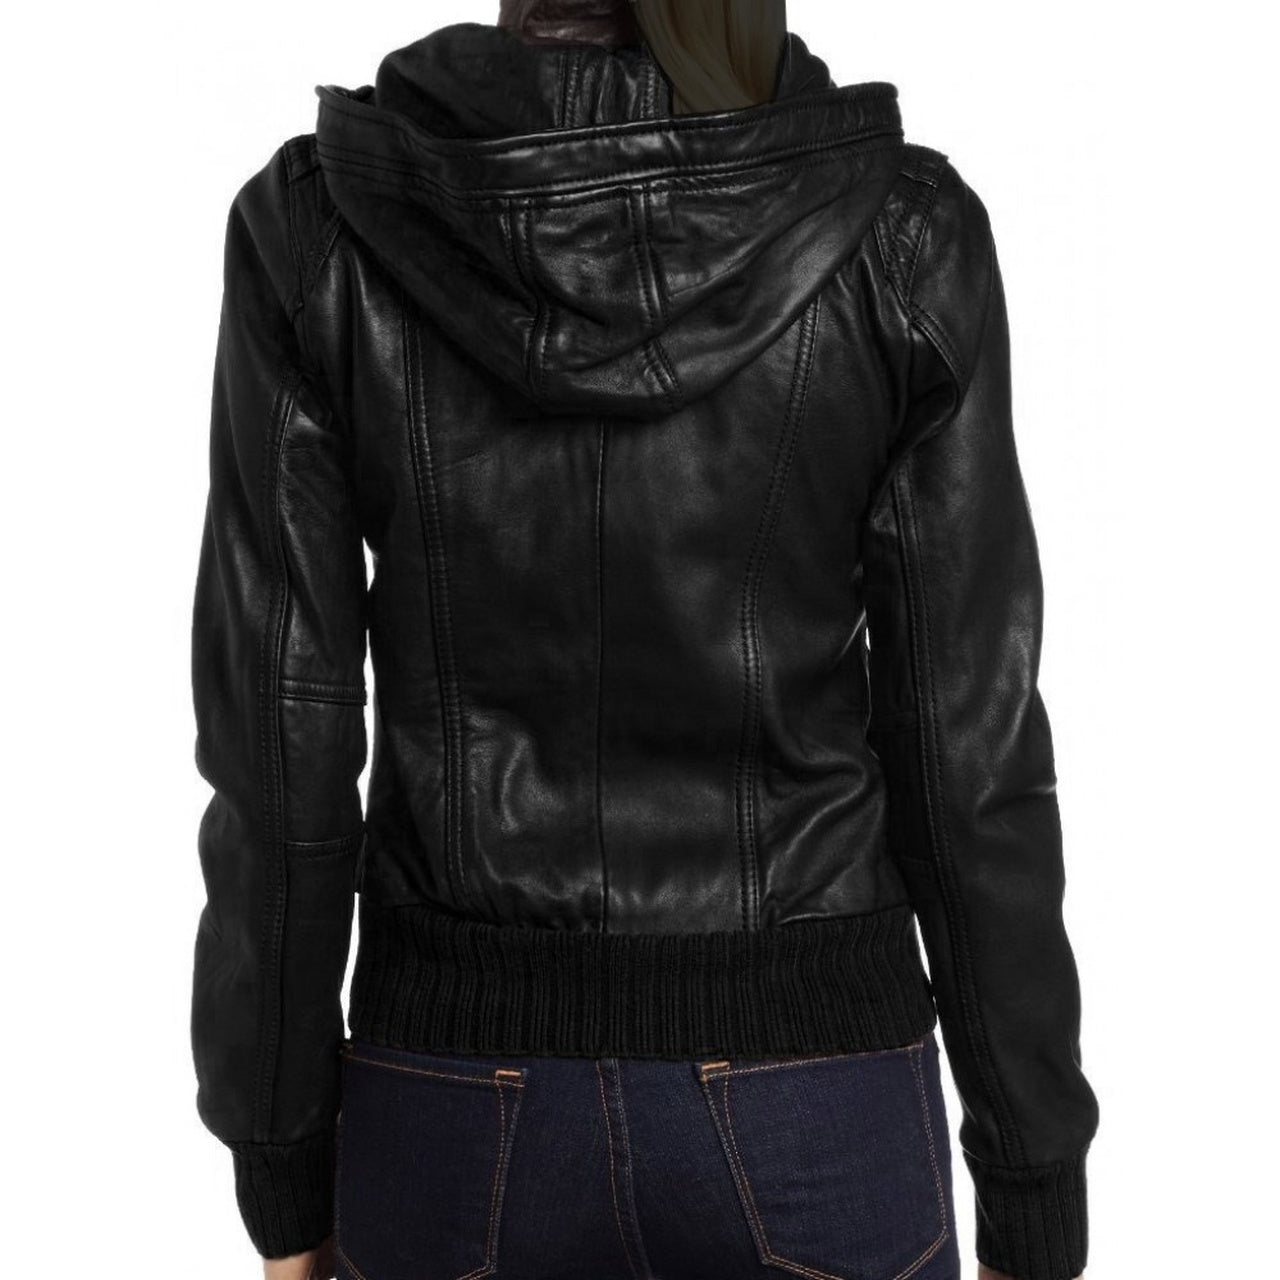 Detachable Hooded Real Leather Jacket for Women - Leather Jacket